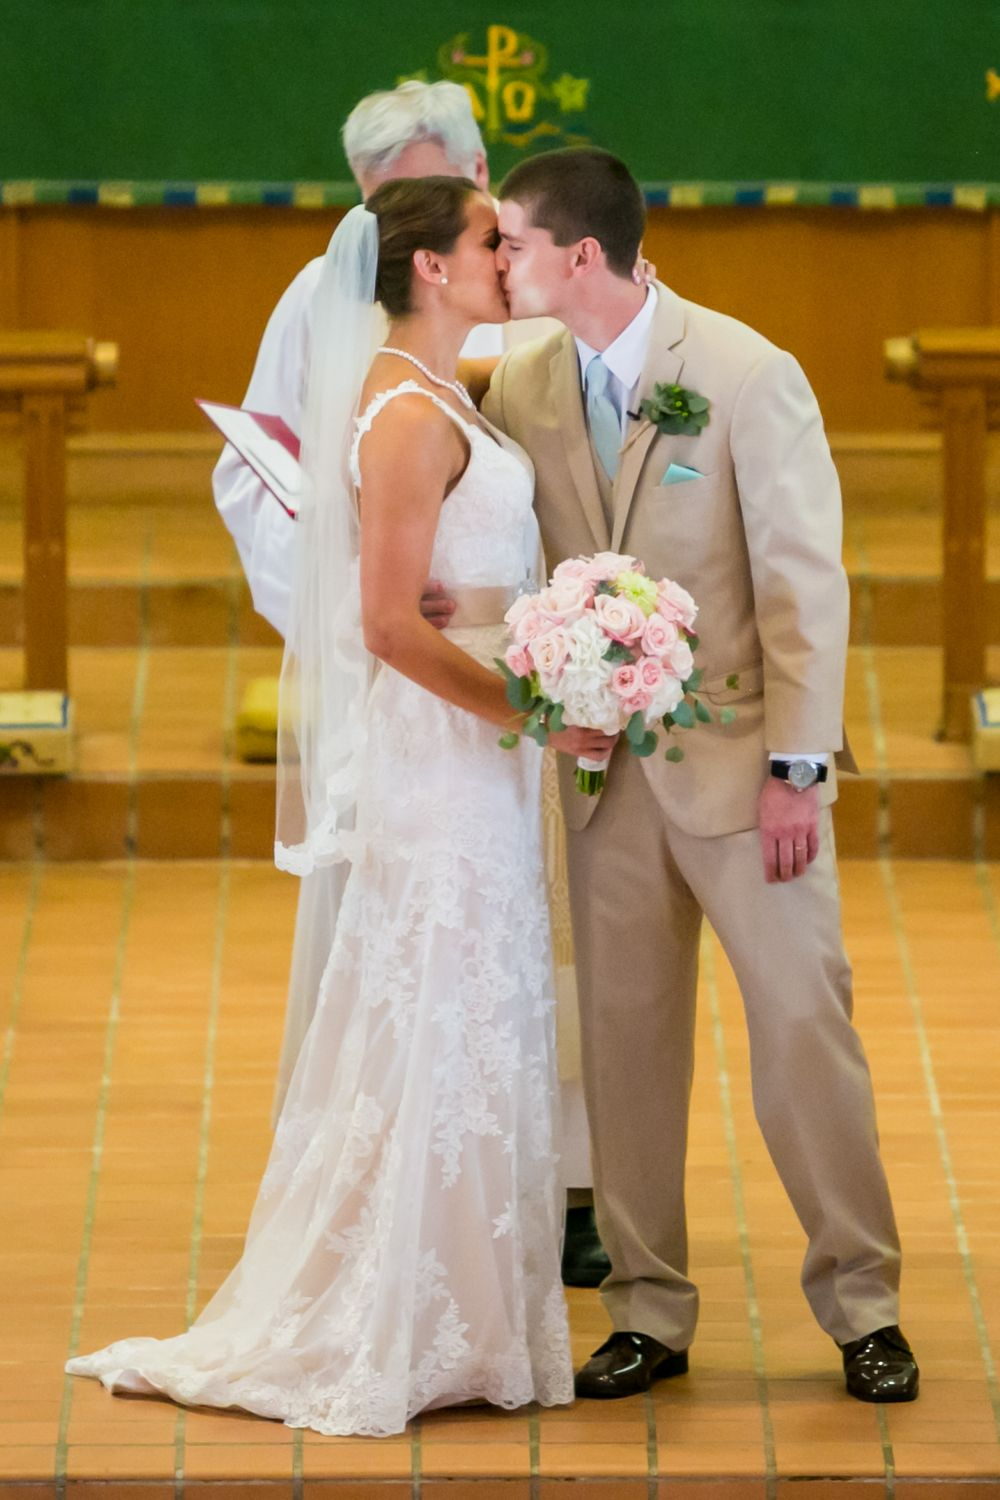 Alex and Mike have their first kiss during their wedding ceremony at Incarnation Lutheran Church in Columbia, SC.